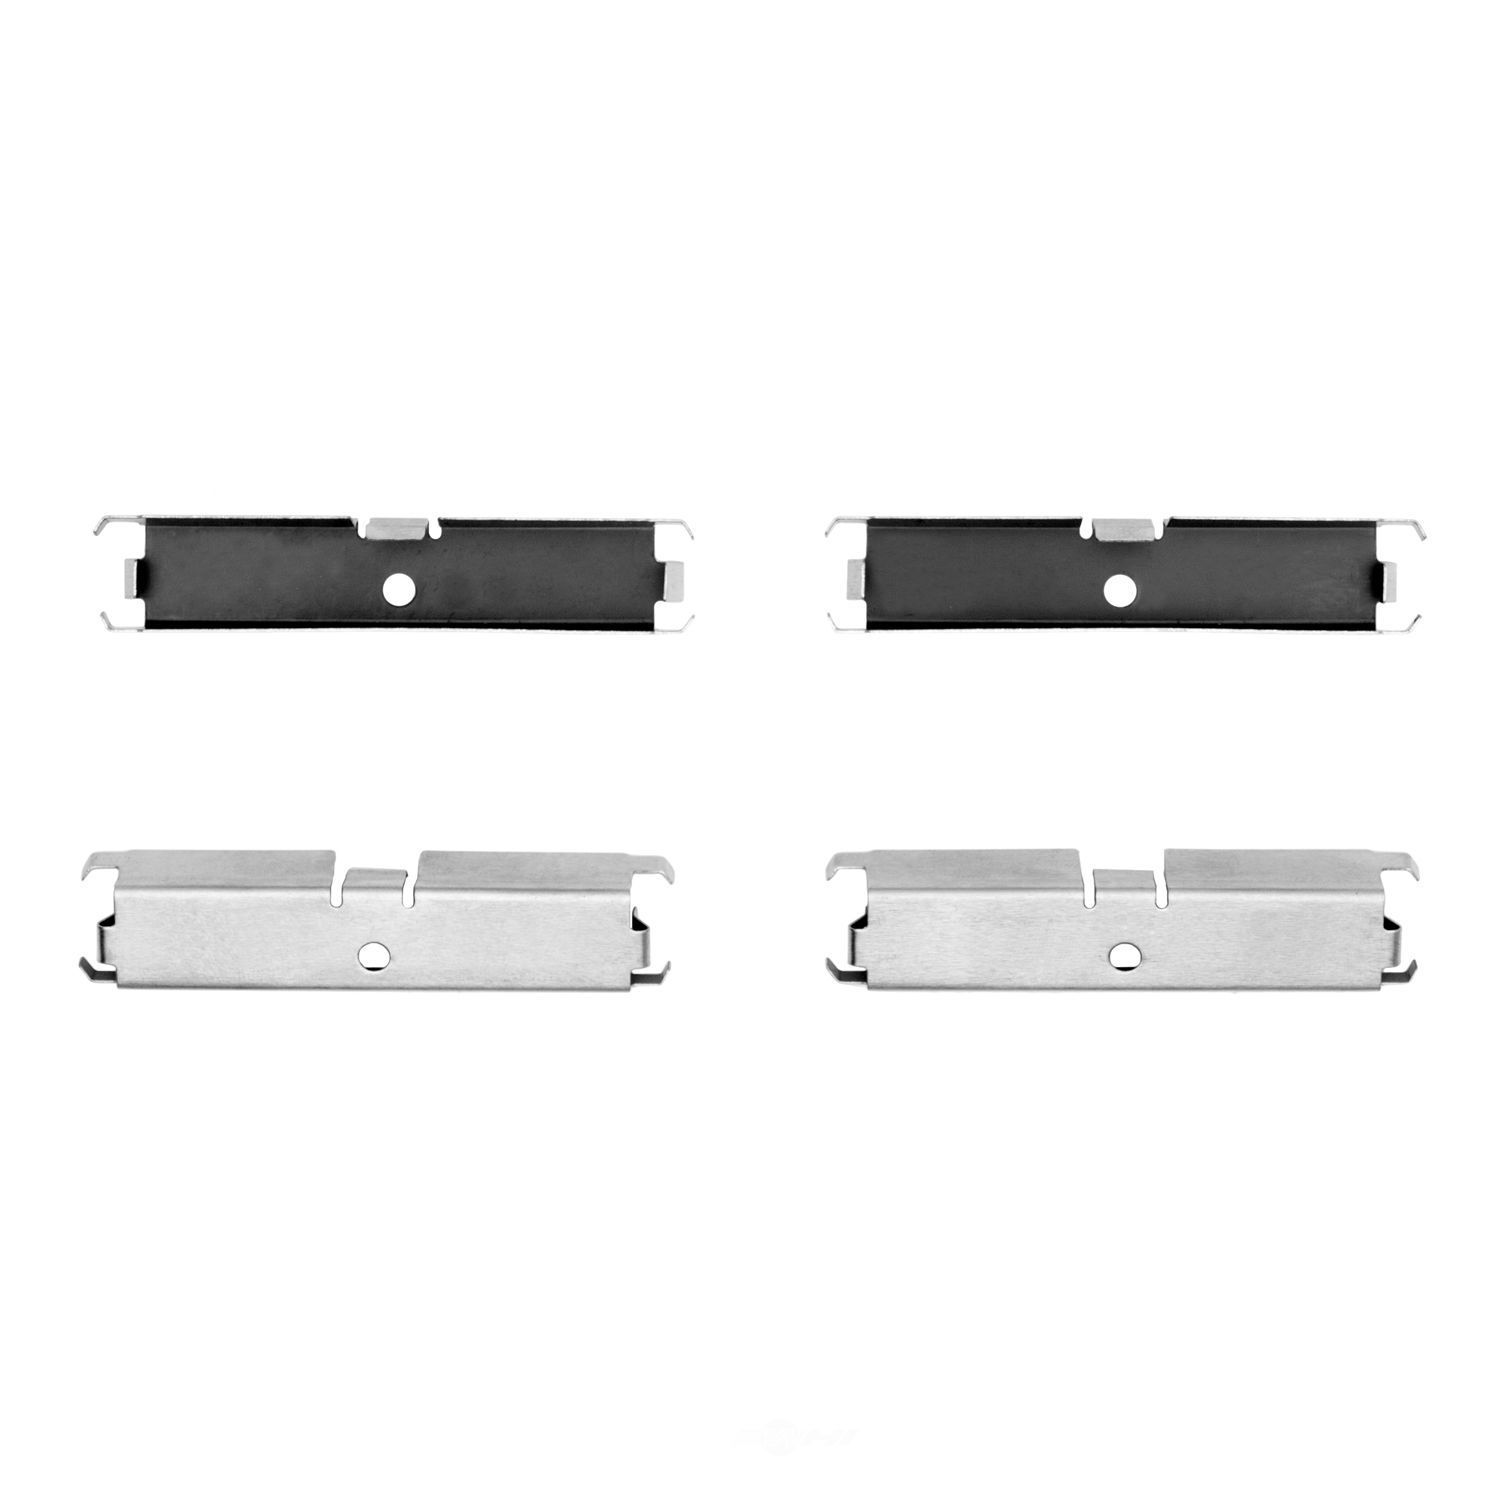 DFC - DFC Disc Brake Hardware Kit - DF1 340-93001